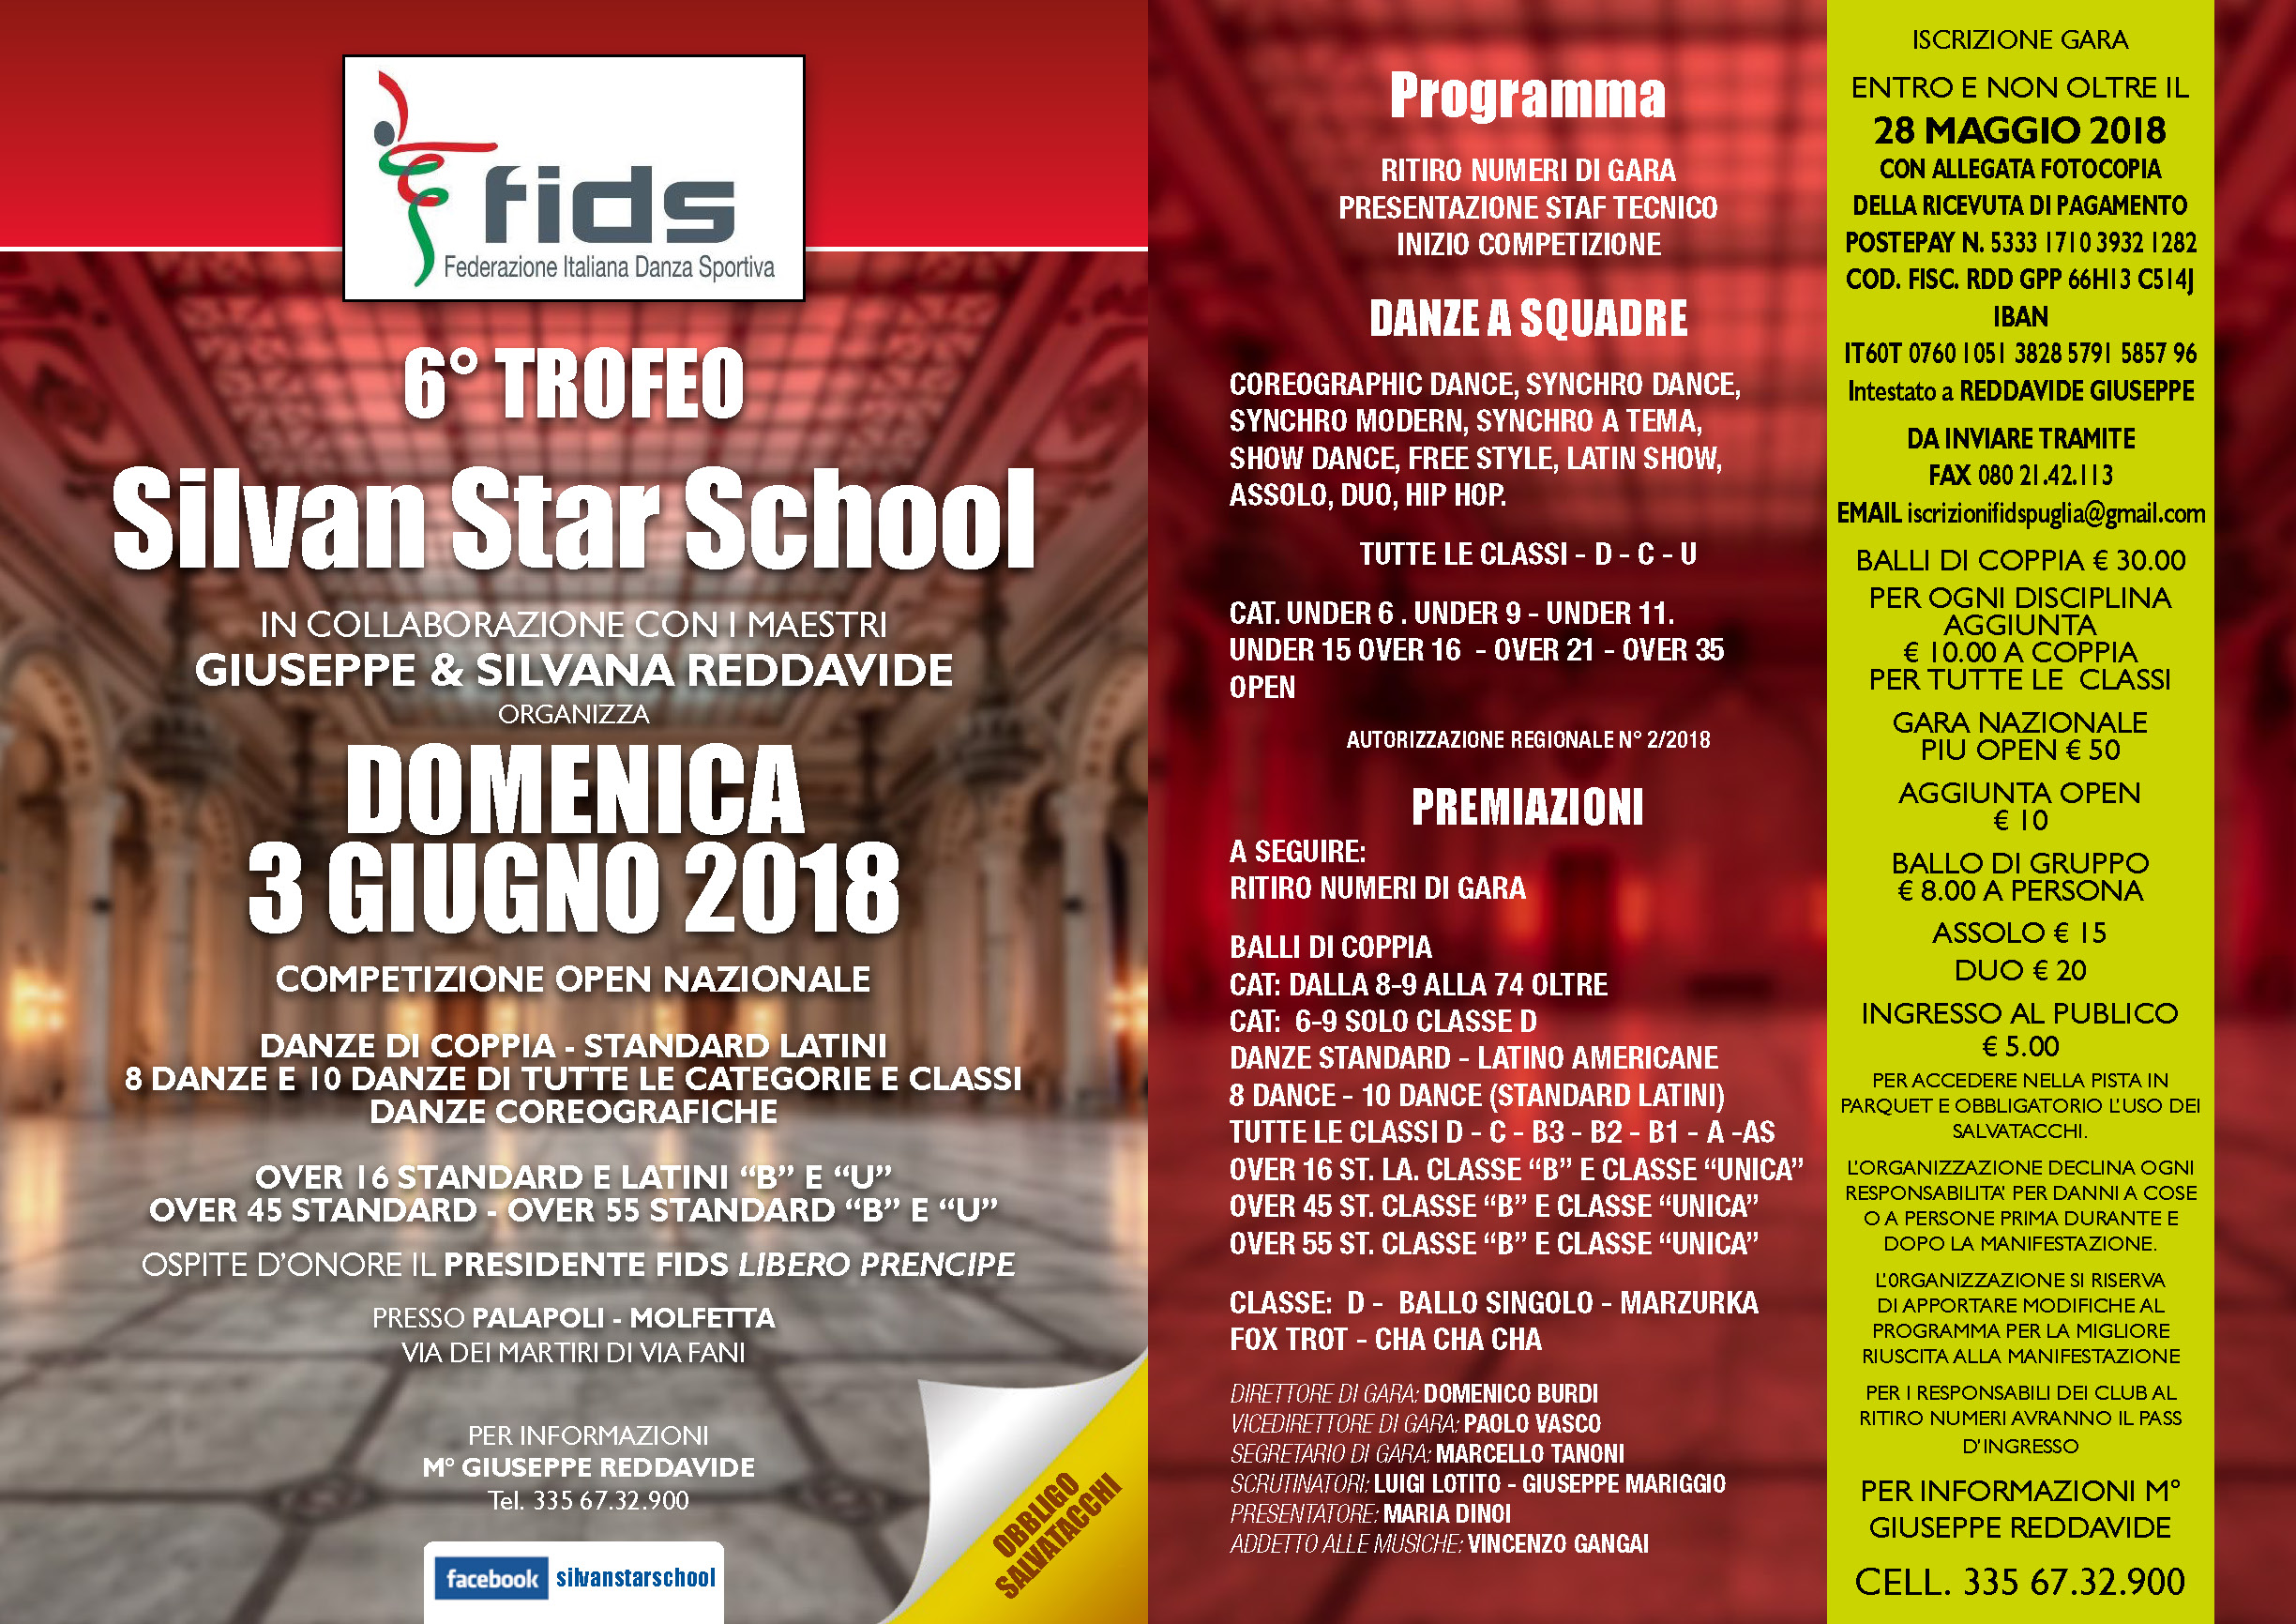 6° Trofeo Silvan Star School